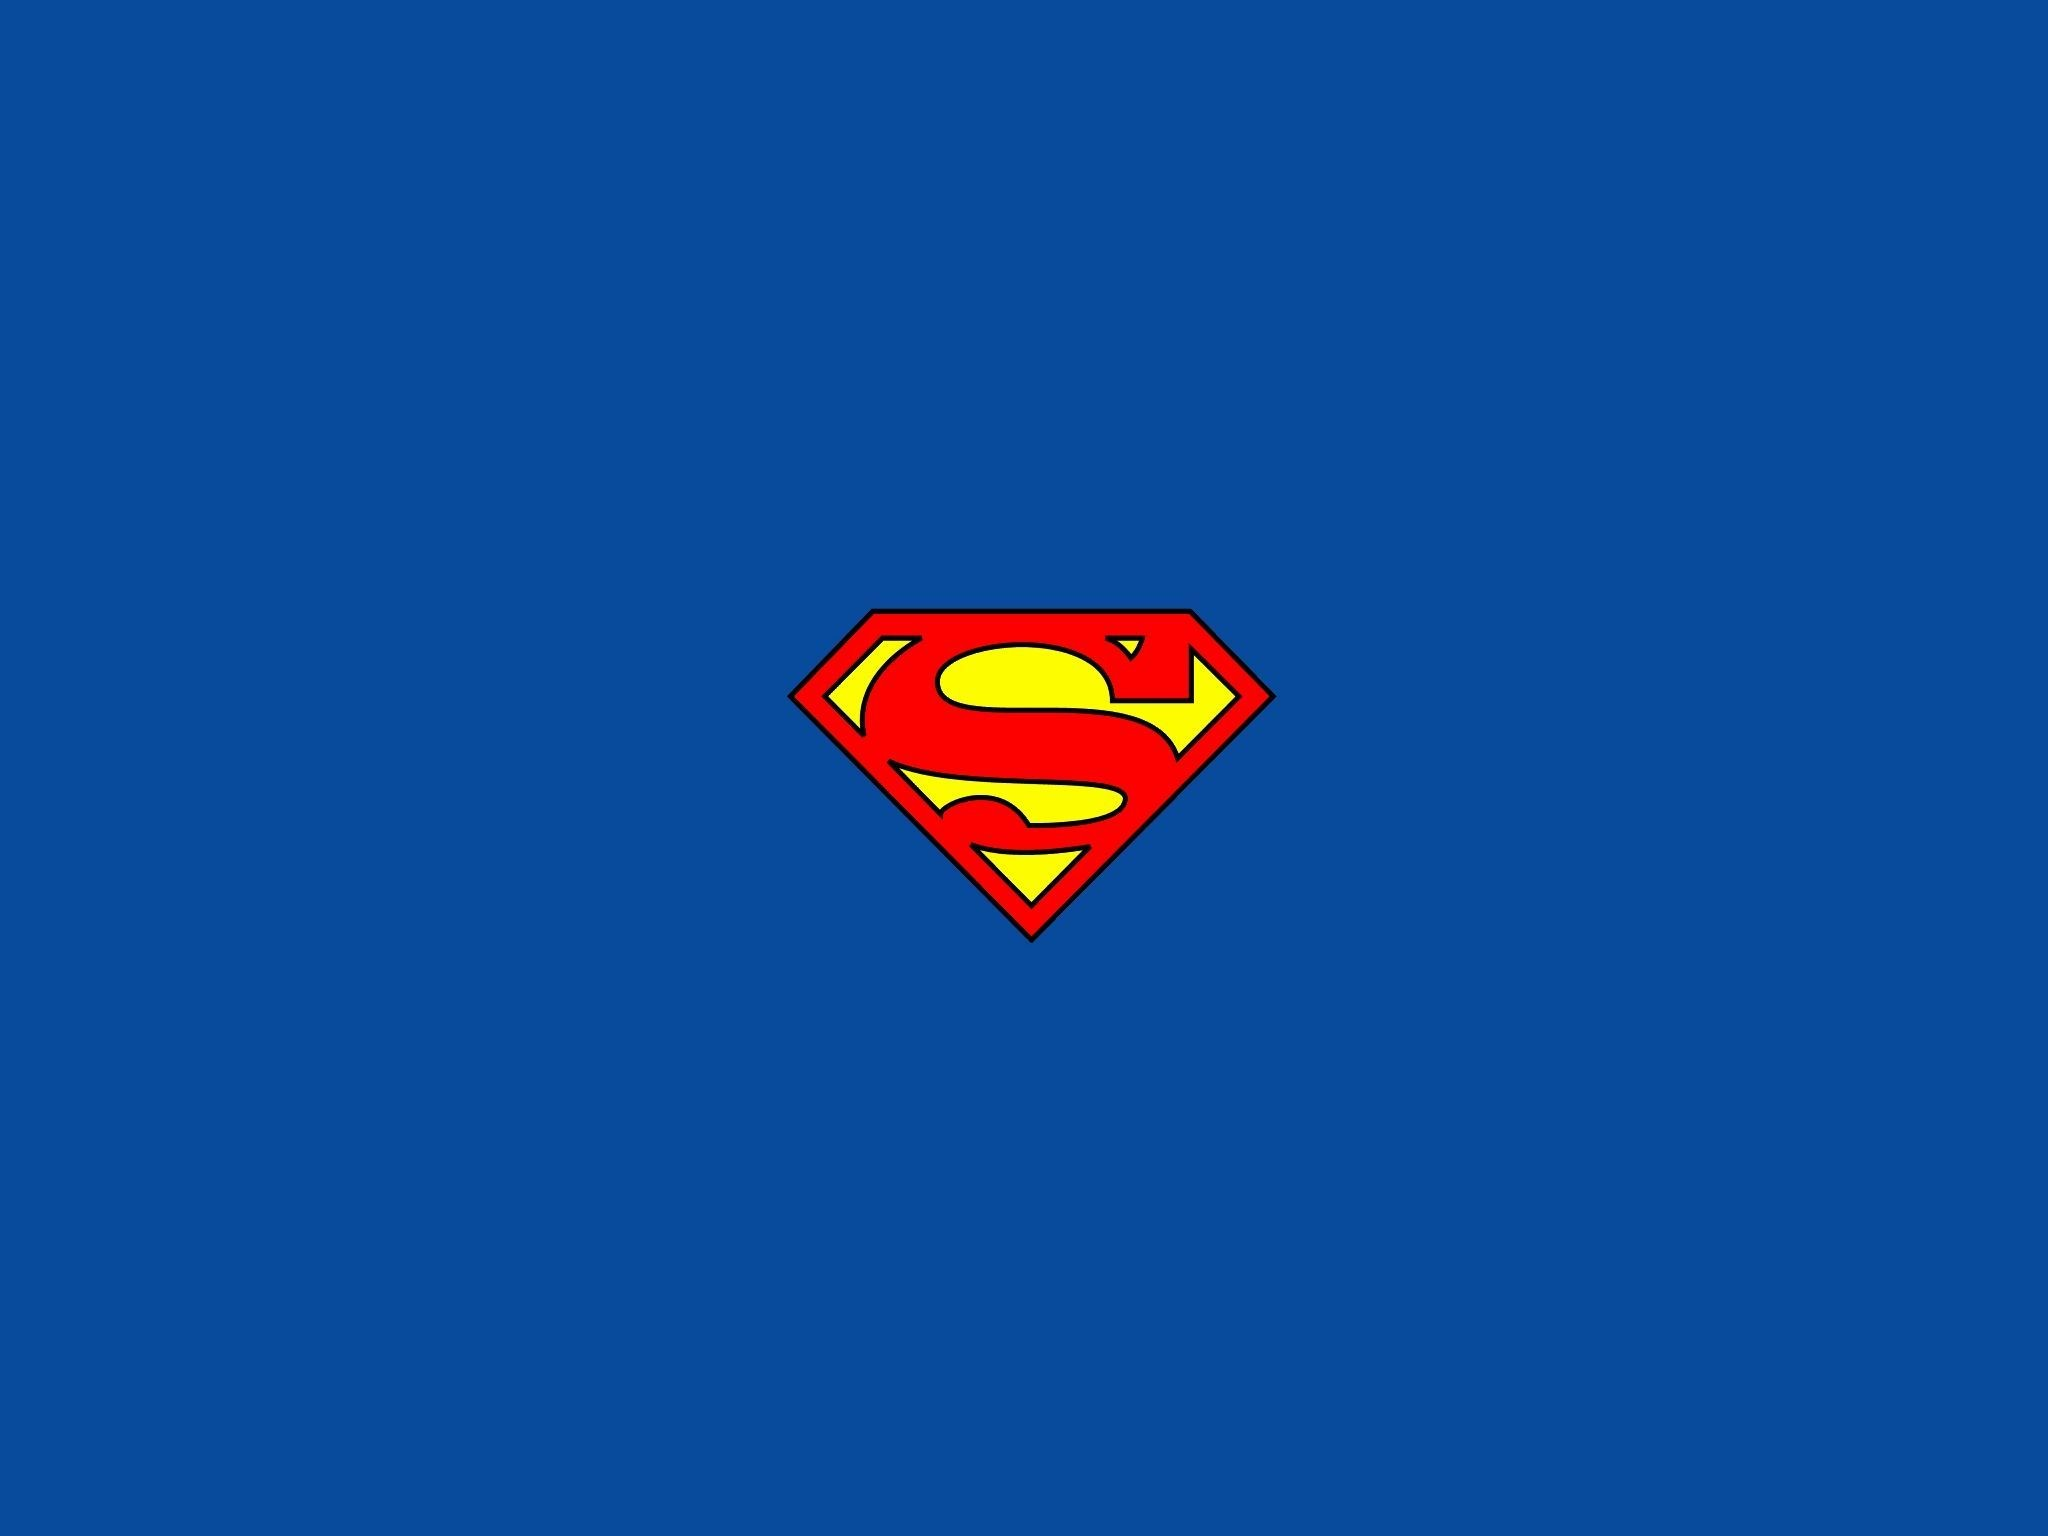 Superman Logo iPhone Wallpaper HD (65+ images)